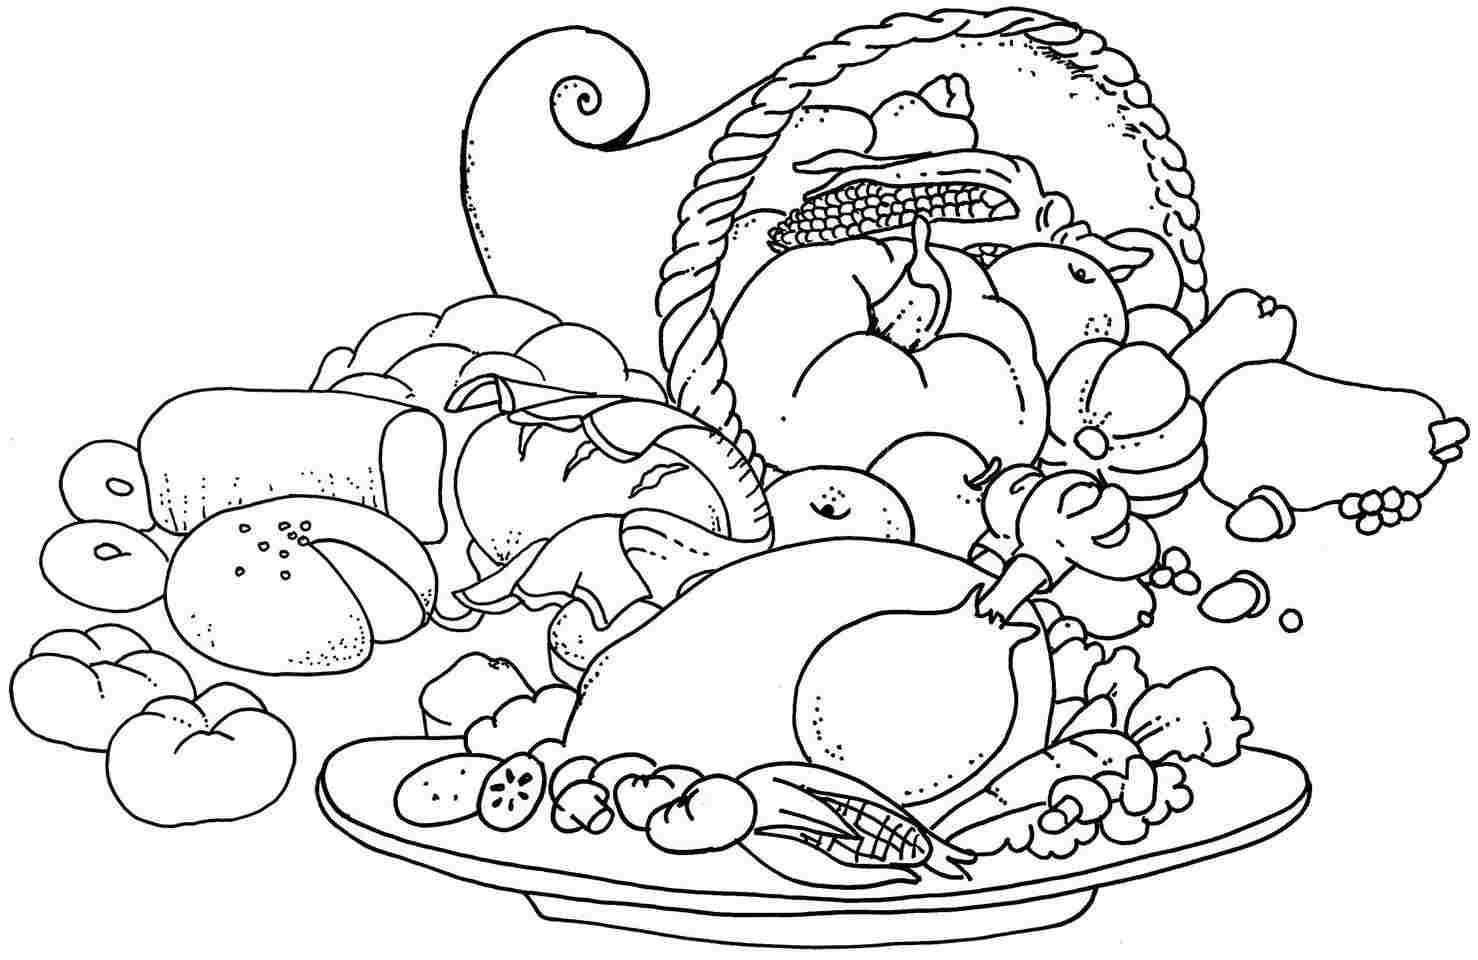 Mauvo.com  Thanksgiving coloring pages, Turkey coloring pages